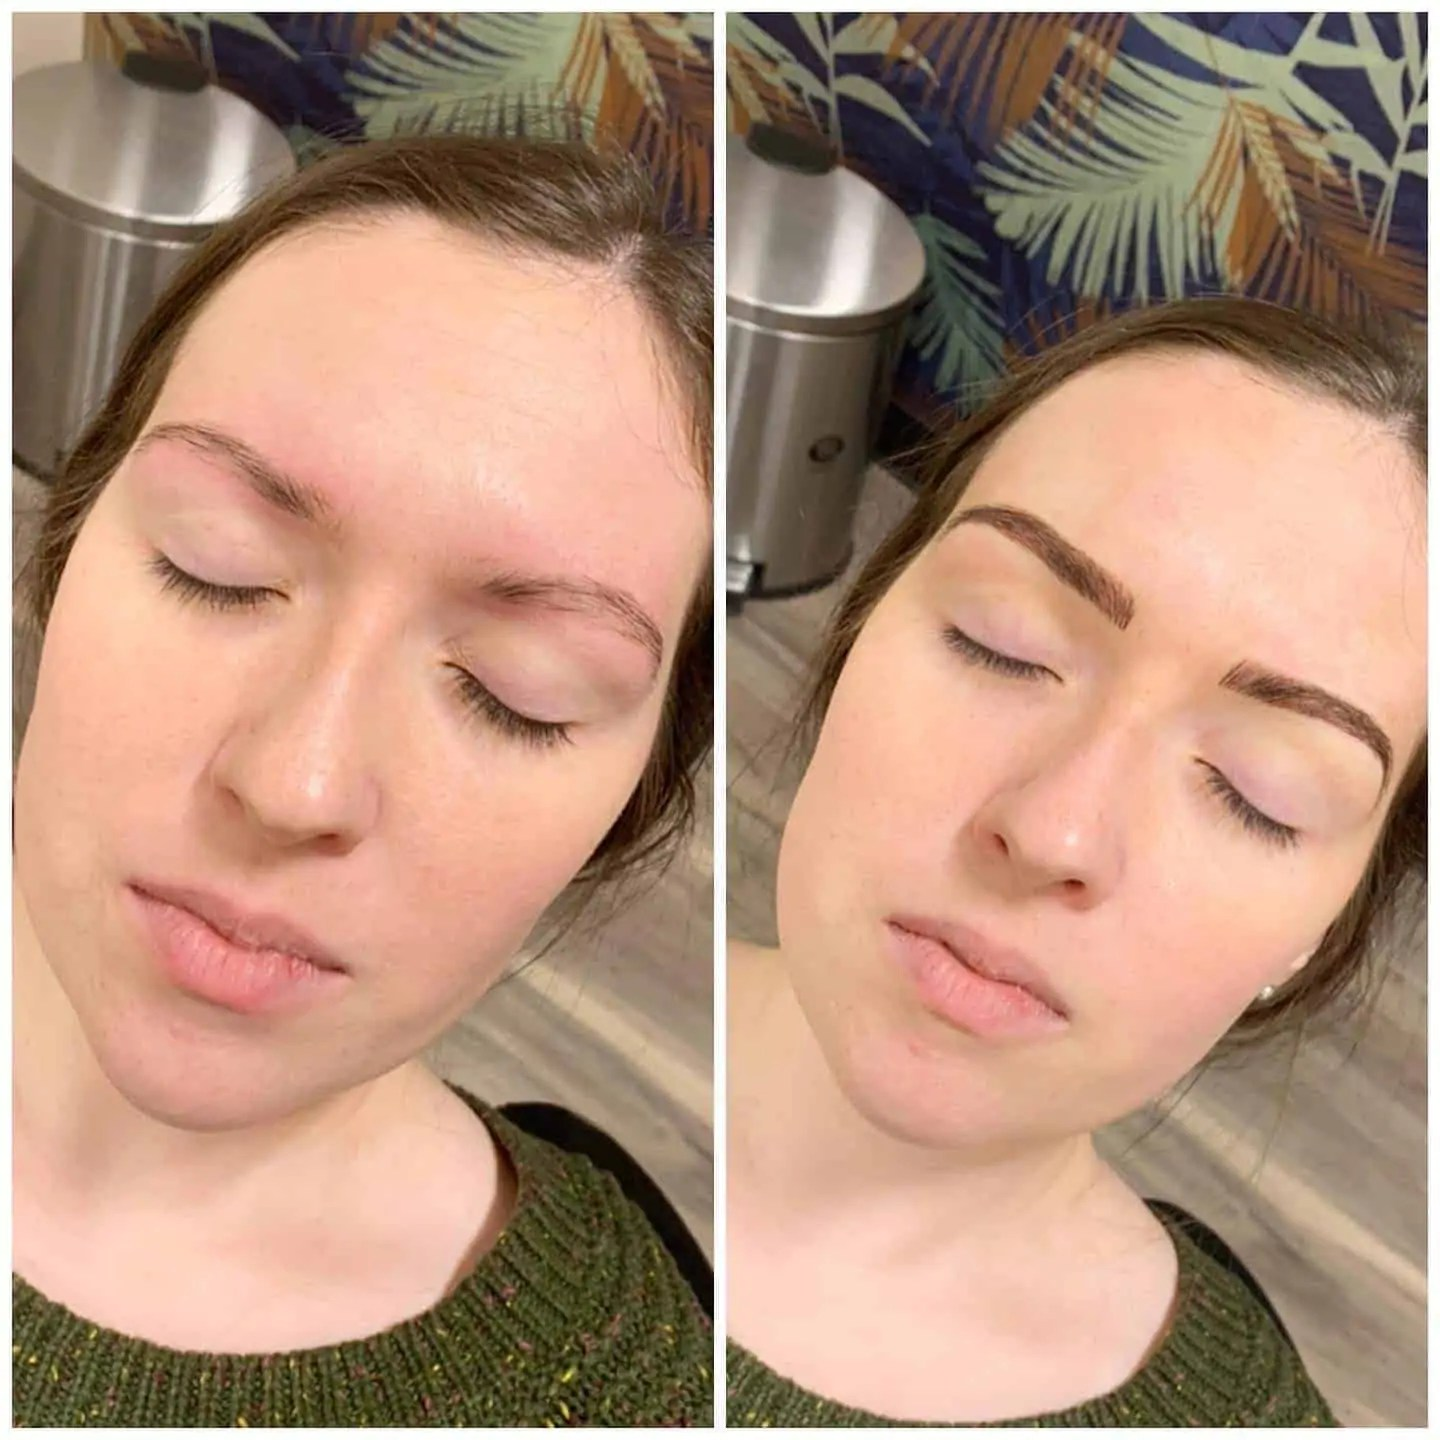 I Tried Microblading My Eyebrows and Here's What Happened